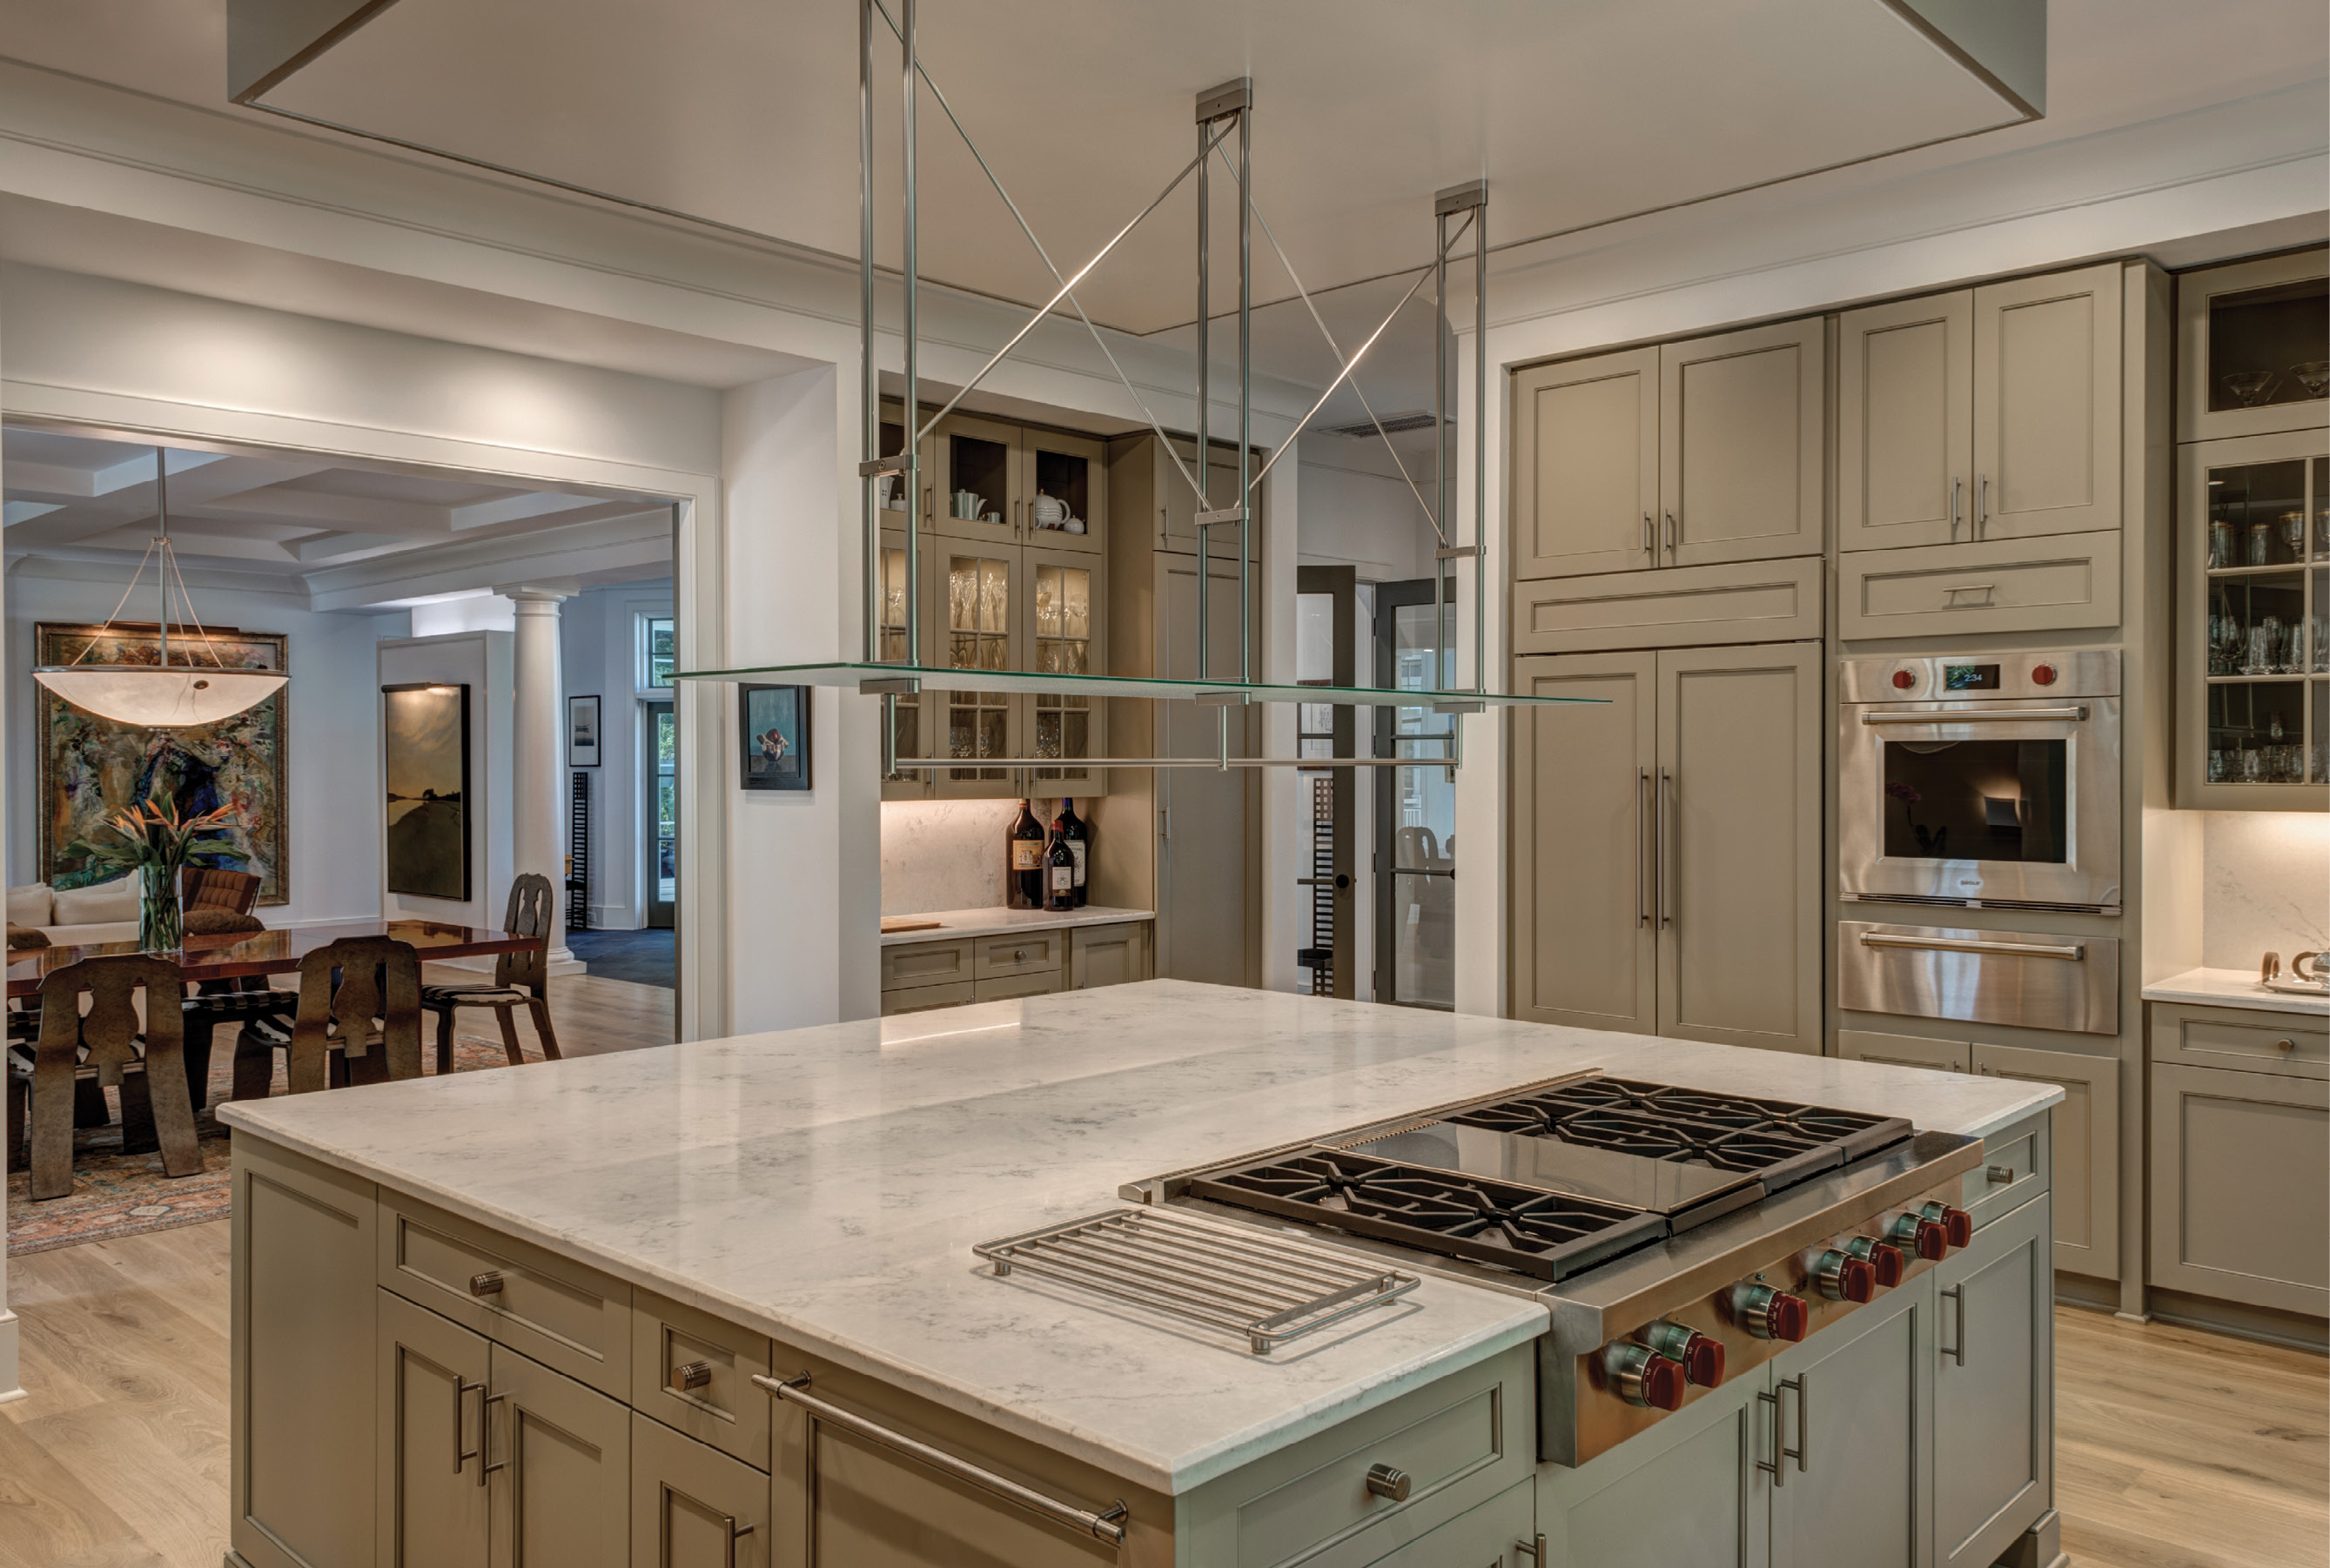 """COOKING LIGHT: Abundant natural light is the main ingredient in the spacious kitchen, where an oversized island with quartz countertops offers a central gathering space. """"We entertain a lot,"""" says the wife, who loves to cook but gives her husband props for """"approaching chef status"""" with his culinary expertise."""